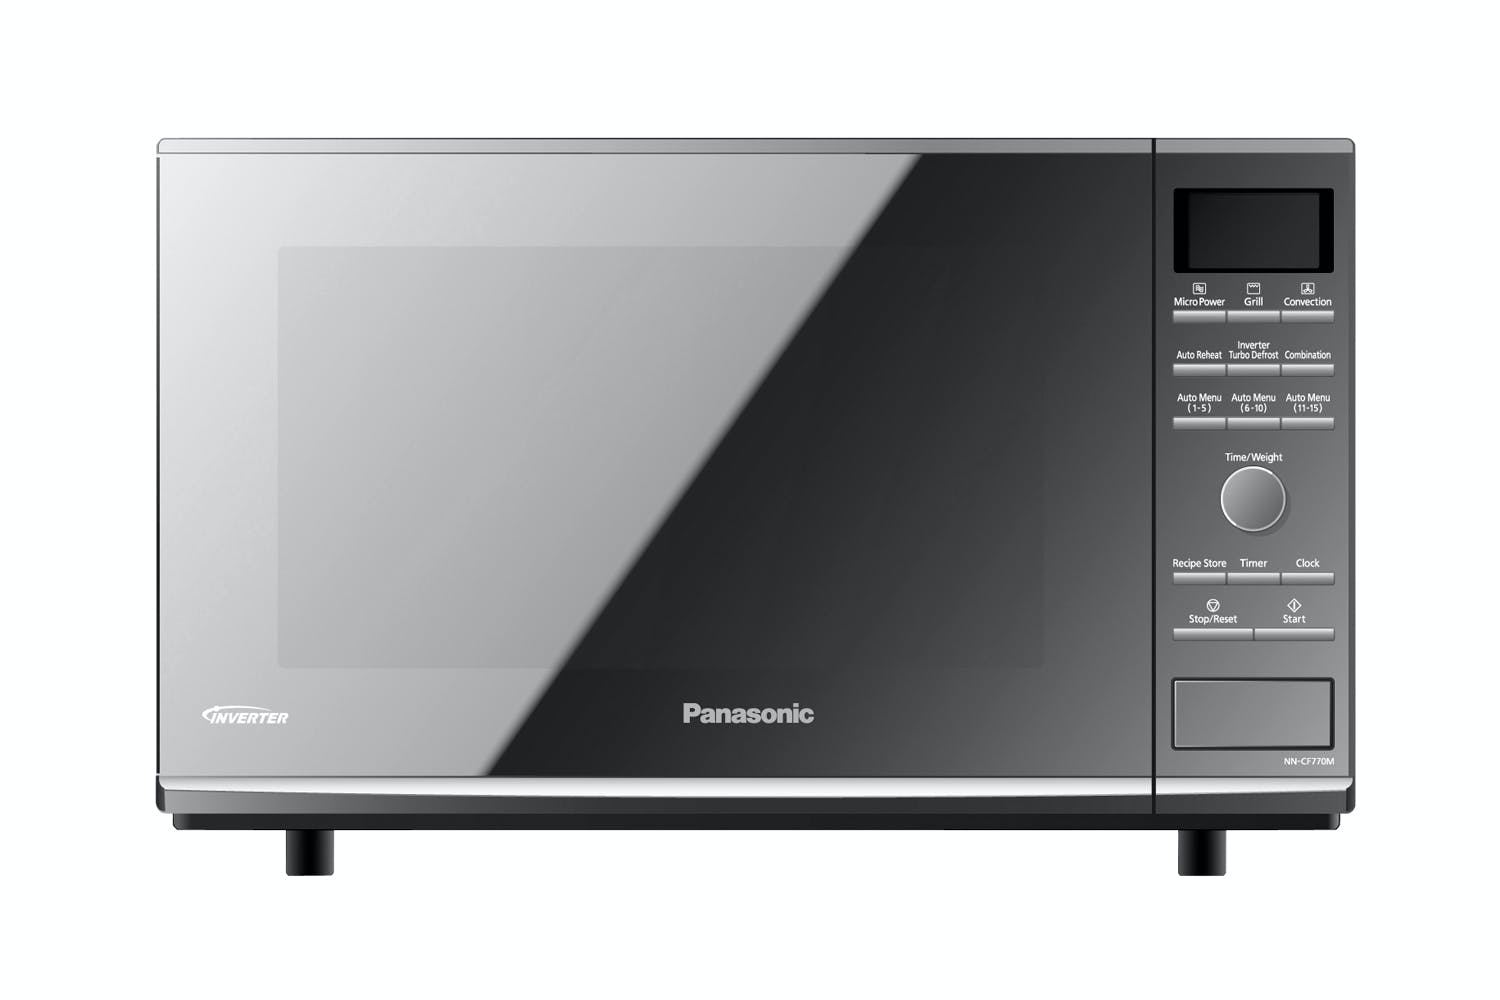 Panasonic 27l Flatbed Convection Microwave Oven Harvey Norman New Zealand